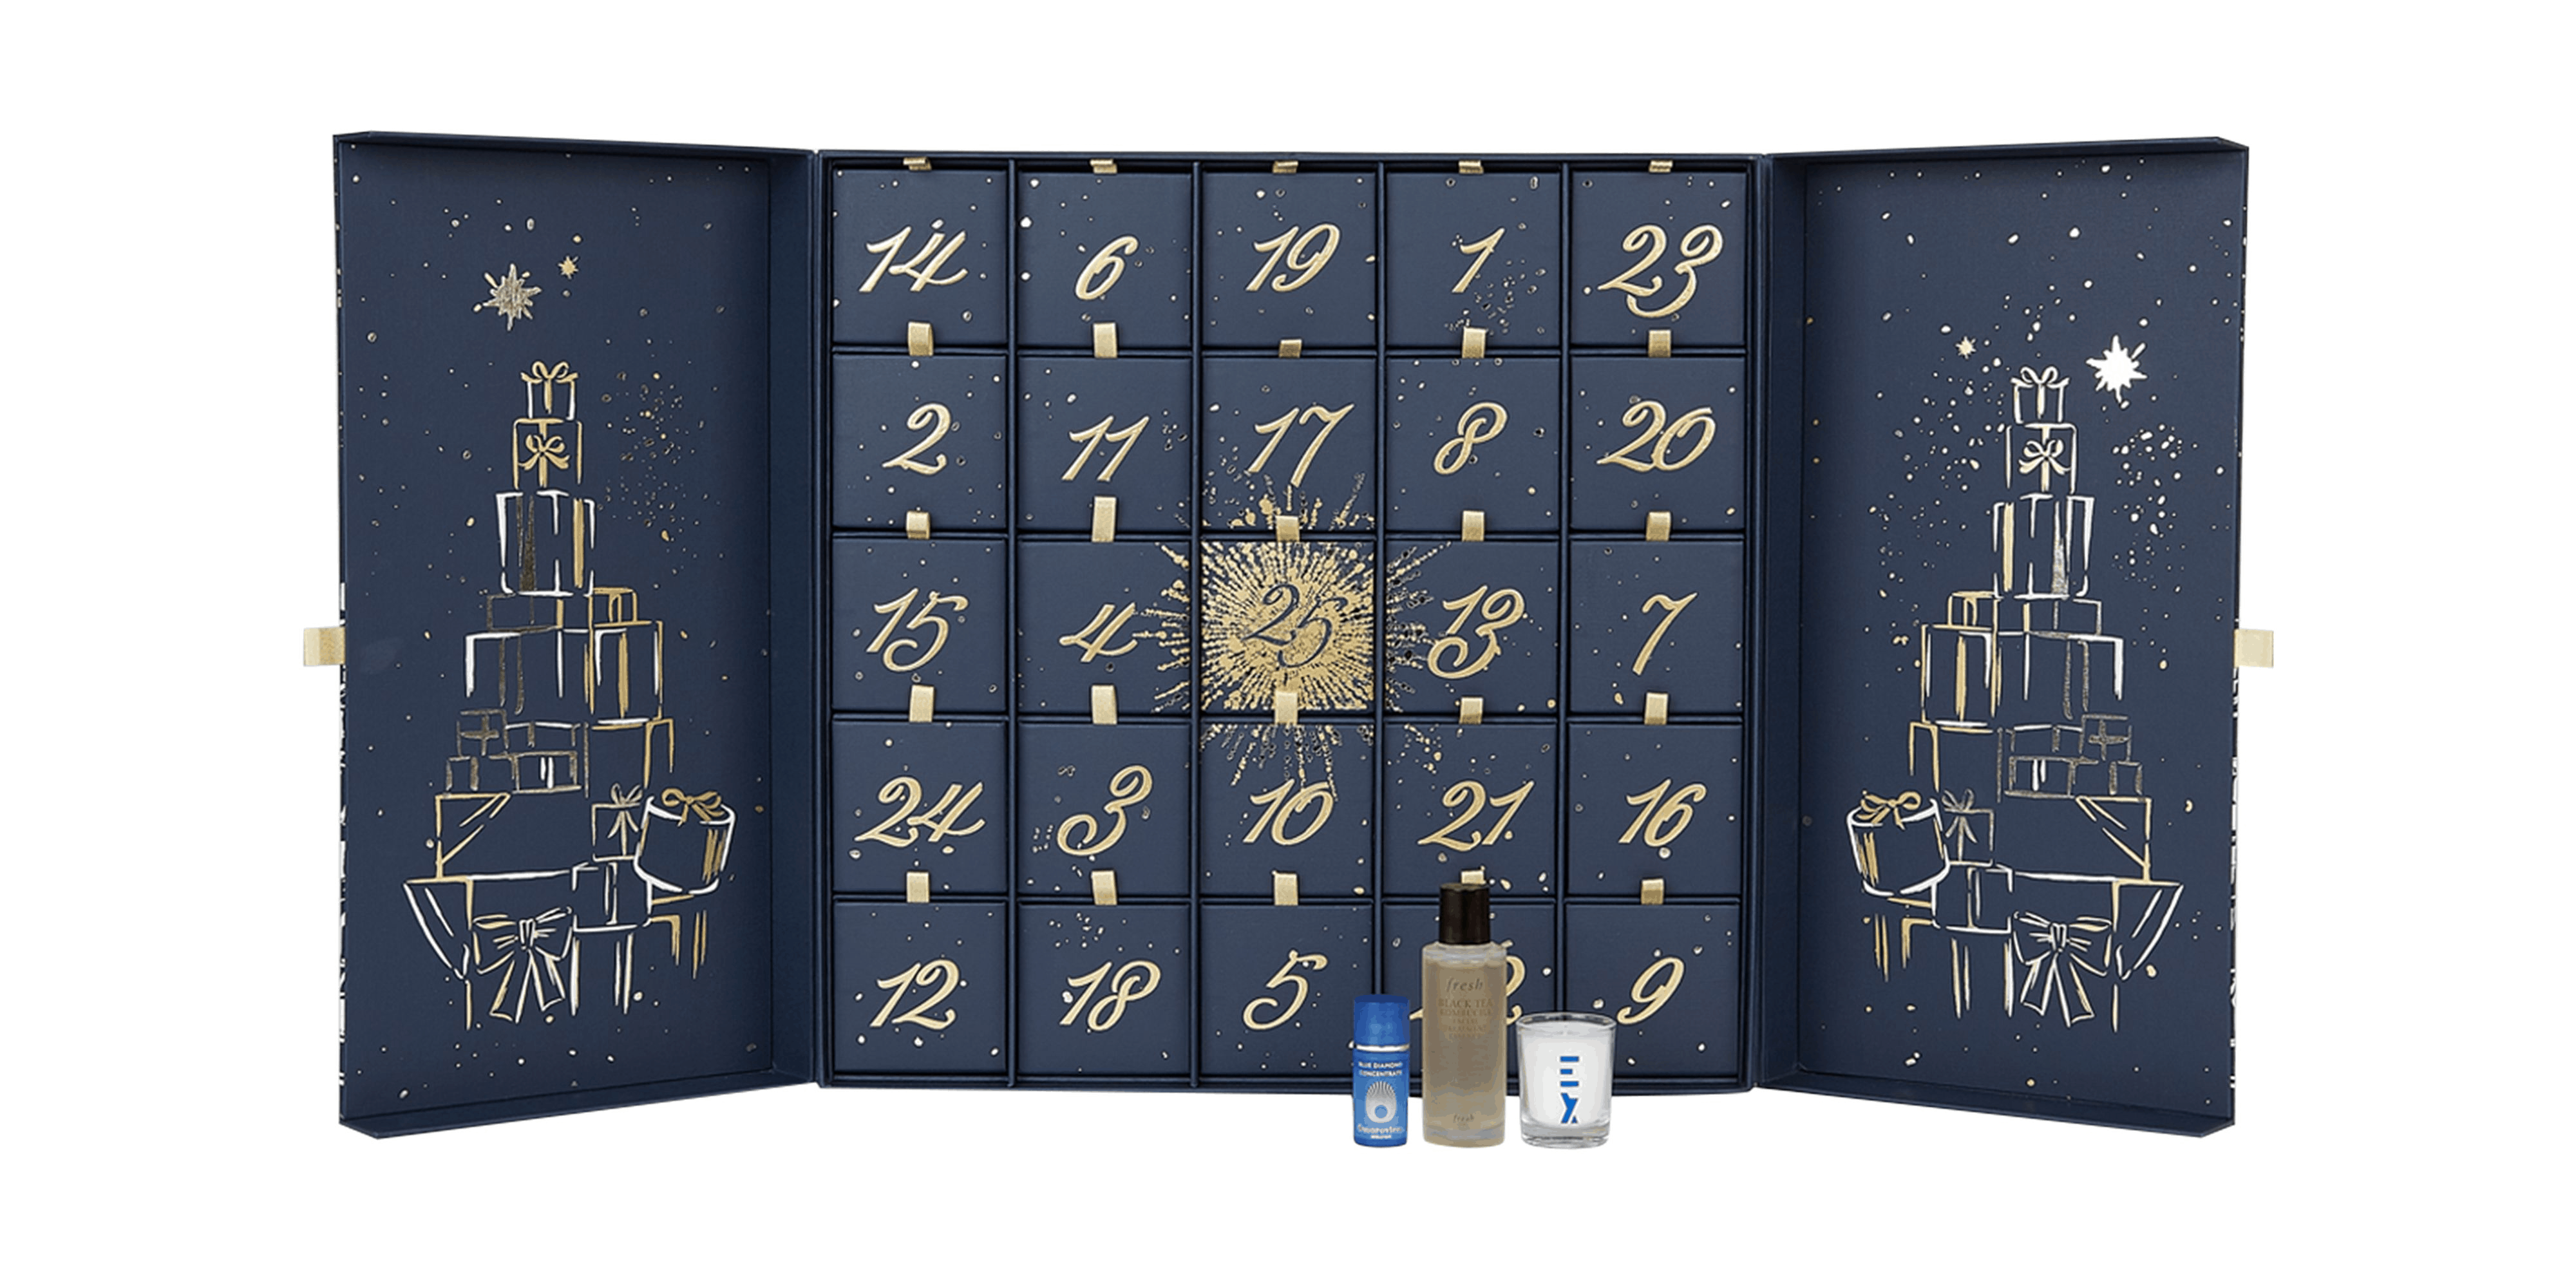 Harrods Beauty Advent Calendar 2019 Coming Soon!